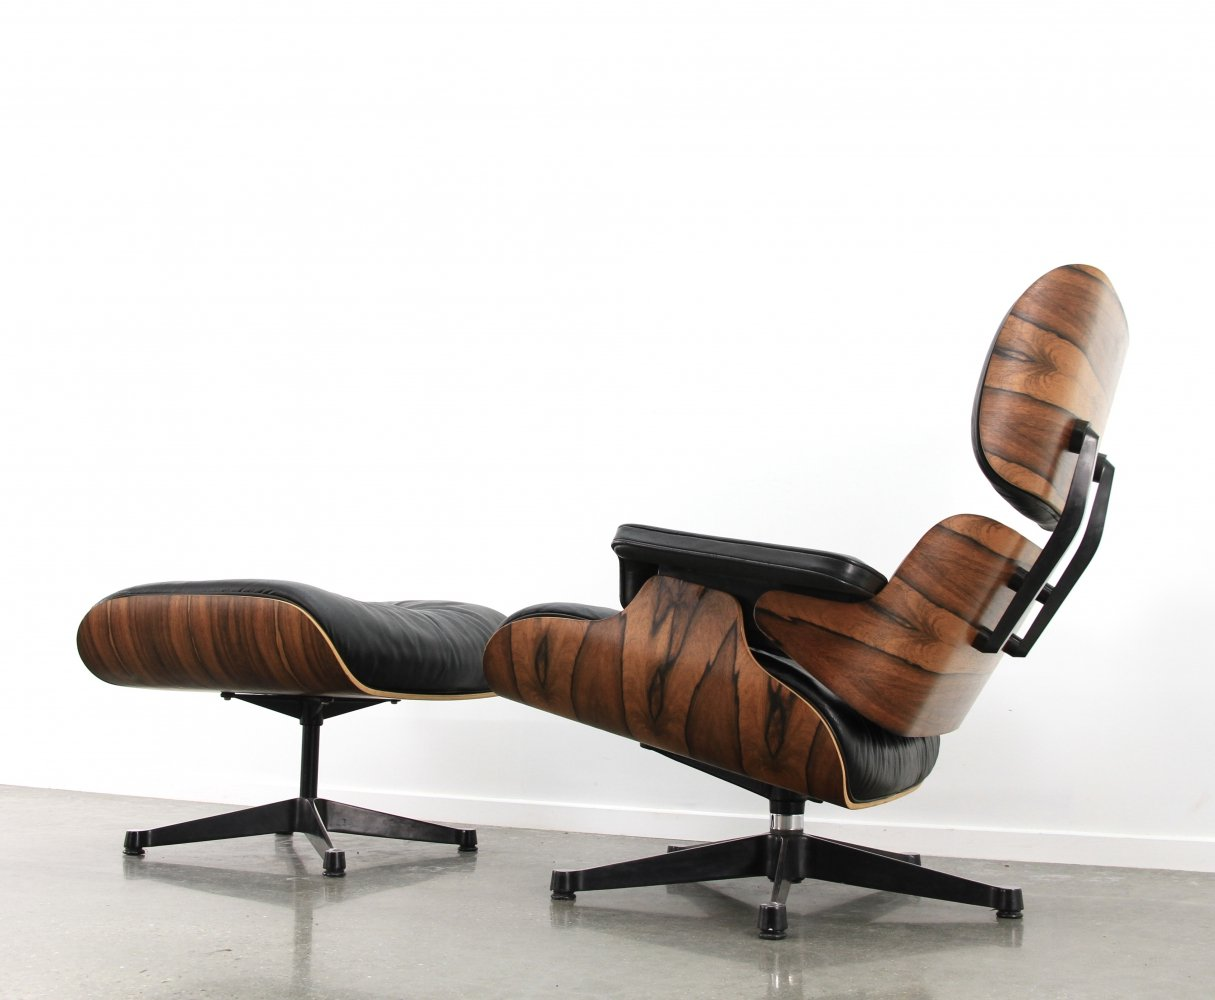 Eames Lounge Chair Ottoman By Vitra 1992 96841 - Vitra Lounge Chair Mahagoni